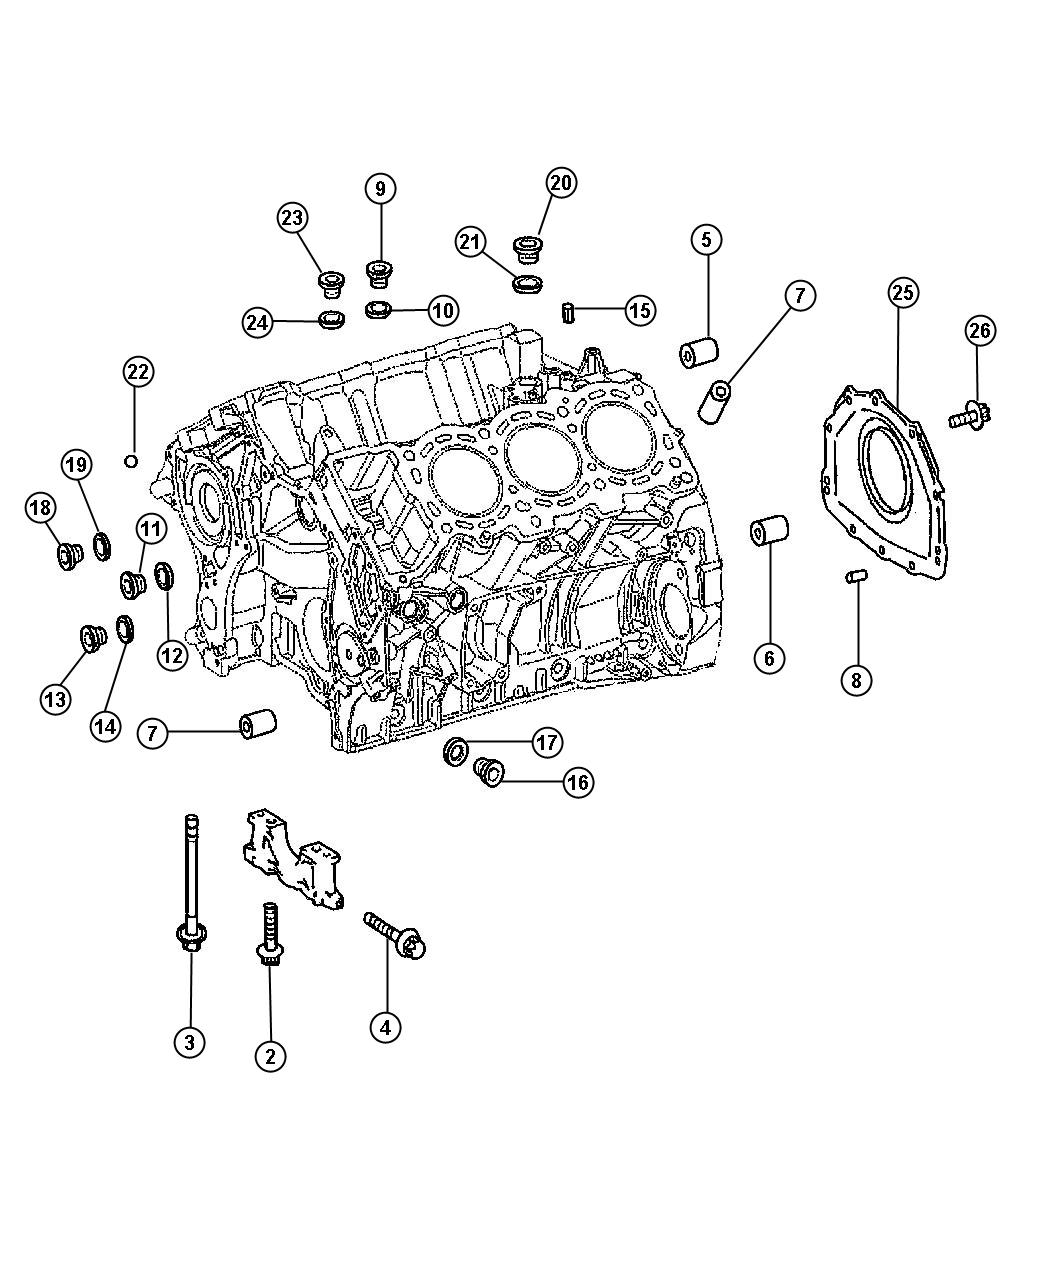 [DIAGRAM] Gm 3500 V6 Engine Diagram FULL Version HD